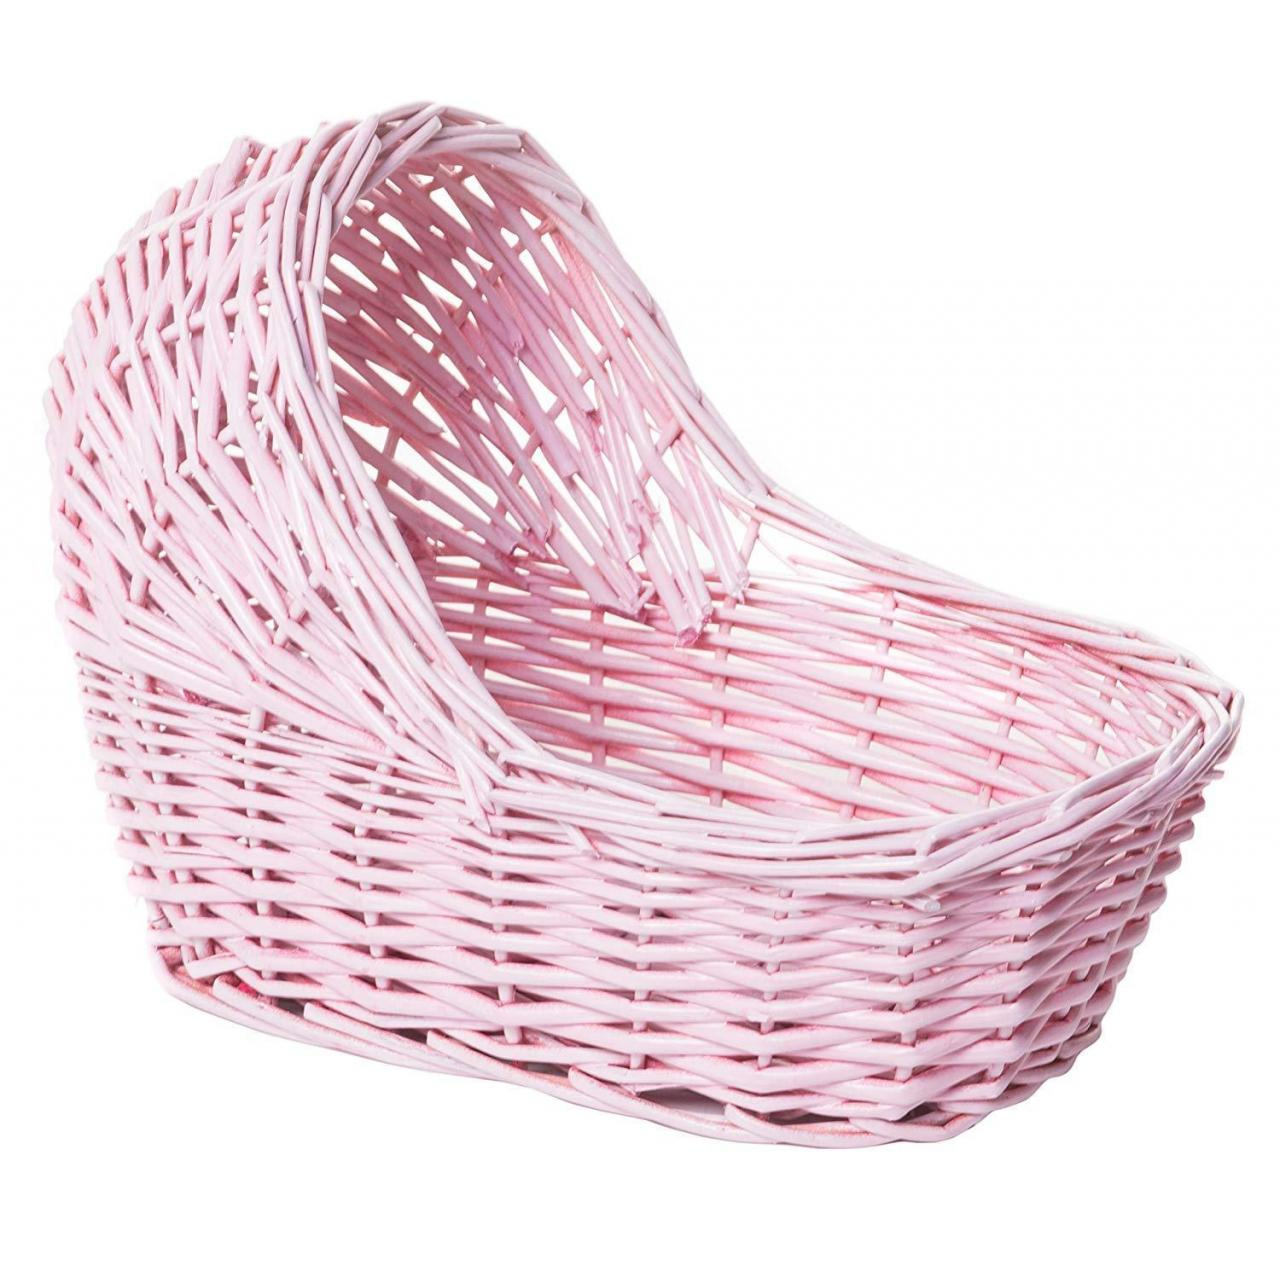 Handmade Willow&Wicker Products Willow Cradle Baby Shower Girl